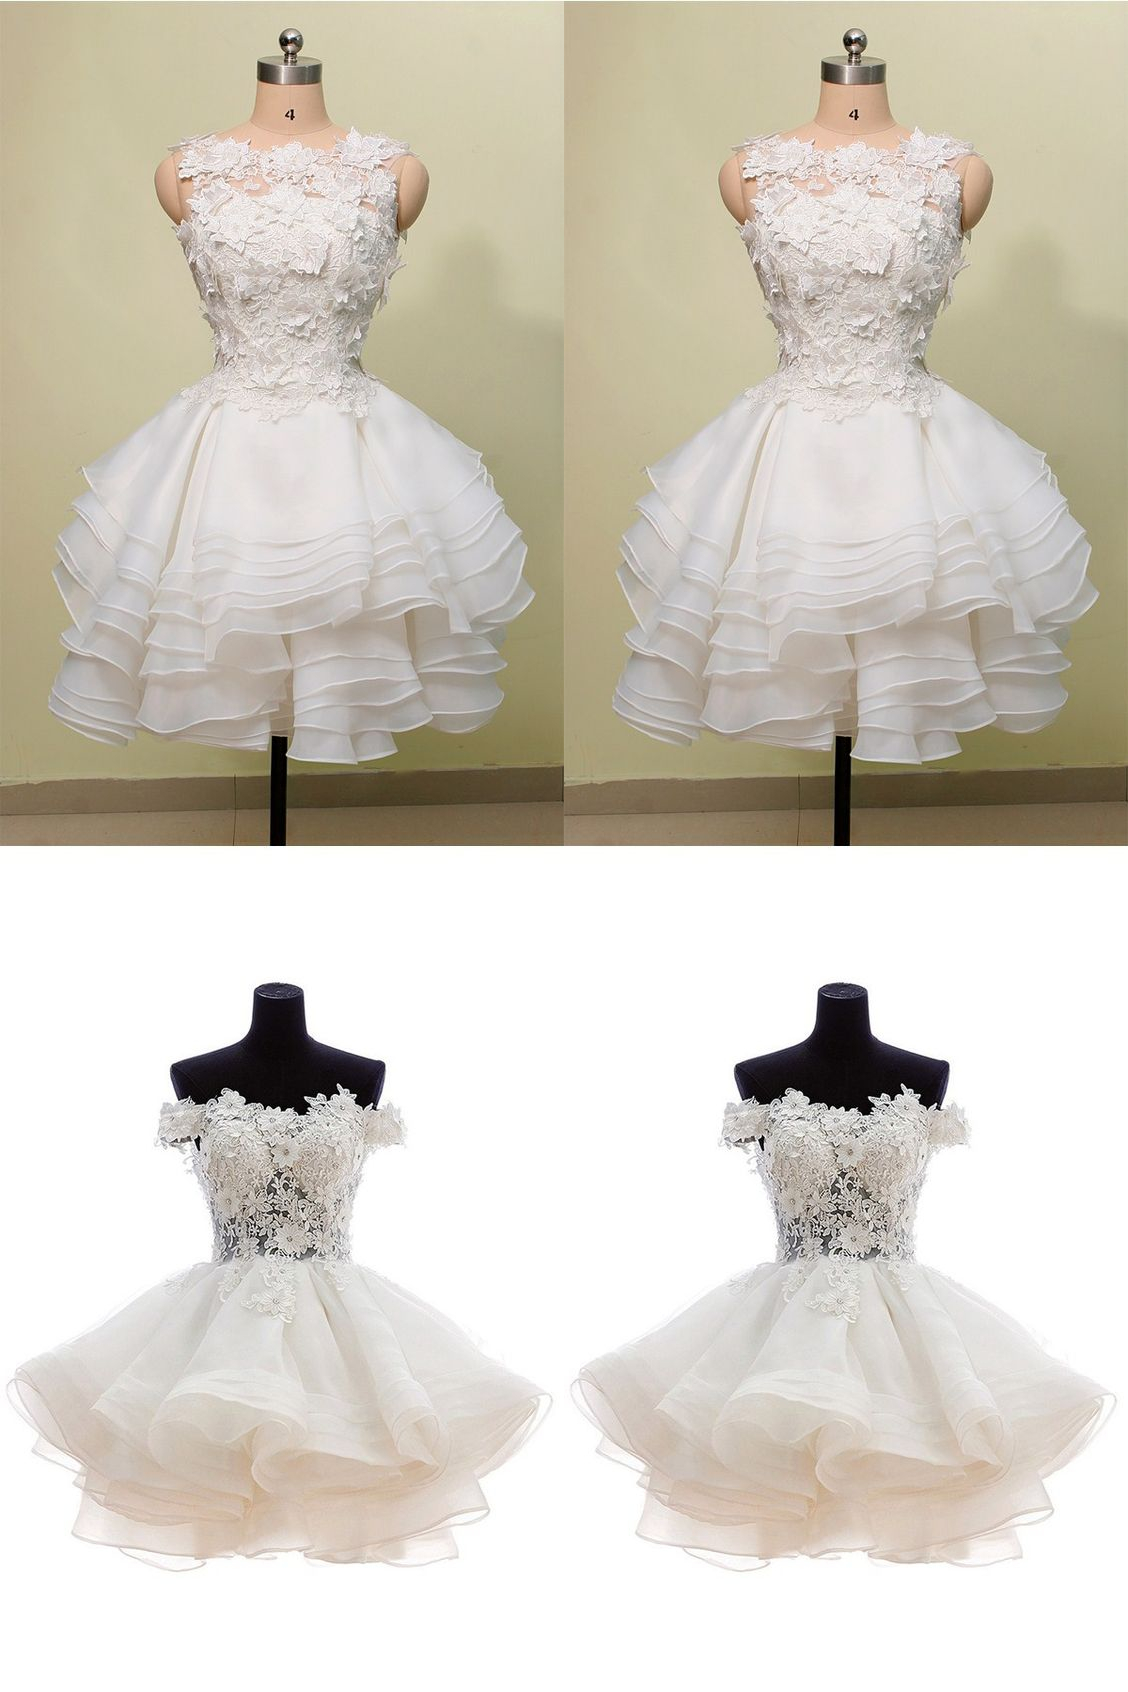 a3037e415199a short white party dresses, cute lace short prom dresses, cheap homecoming  dresses